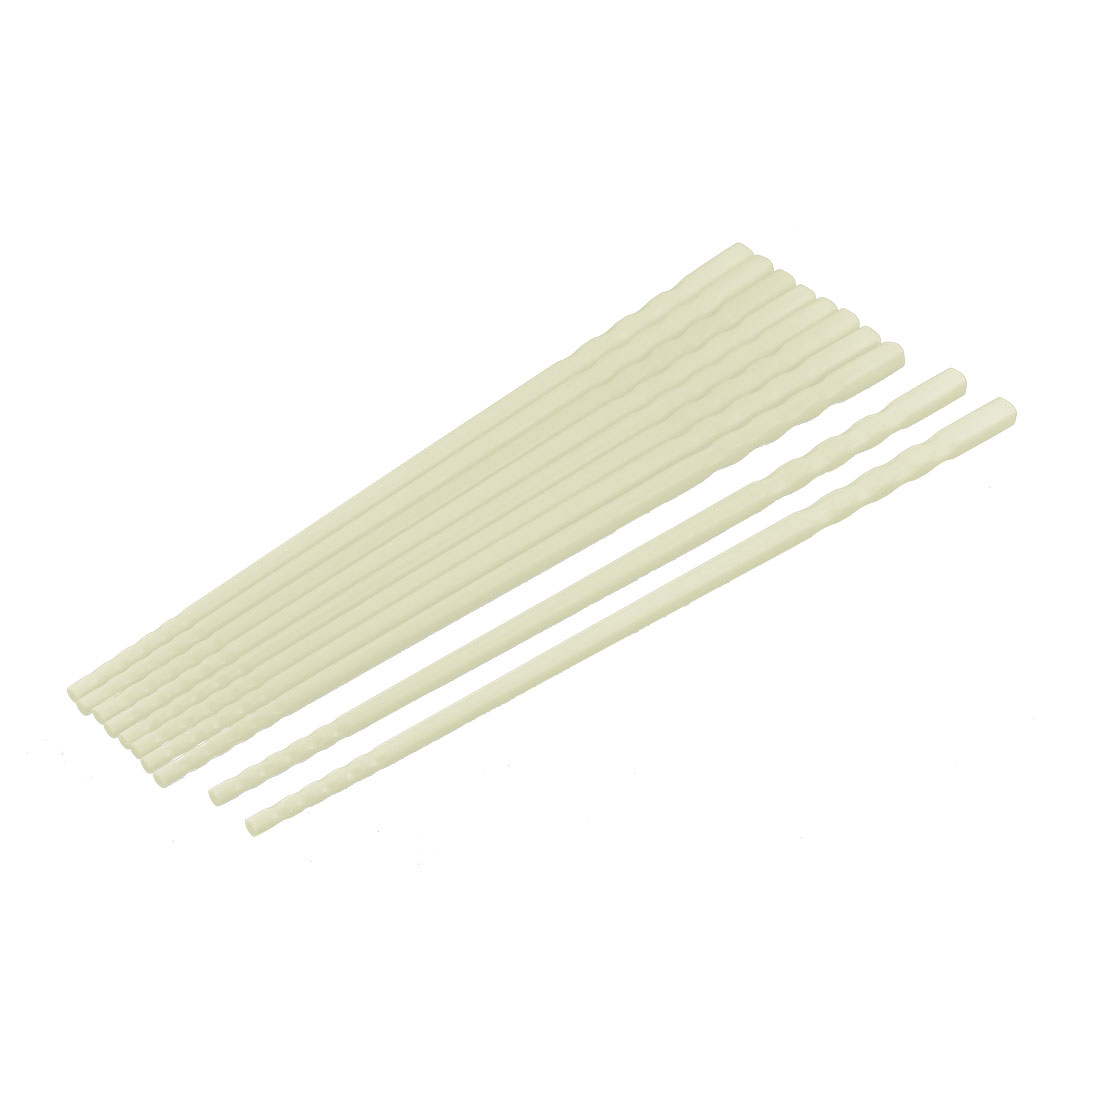 Home Restaurant Kitchenware Tableware Plastic Chopsticks Beige 22cm Length 5 Pairs